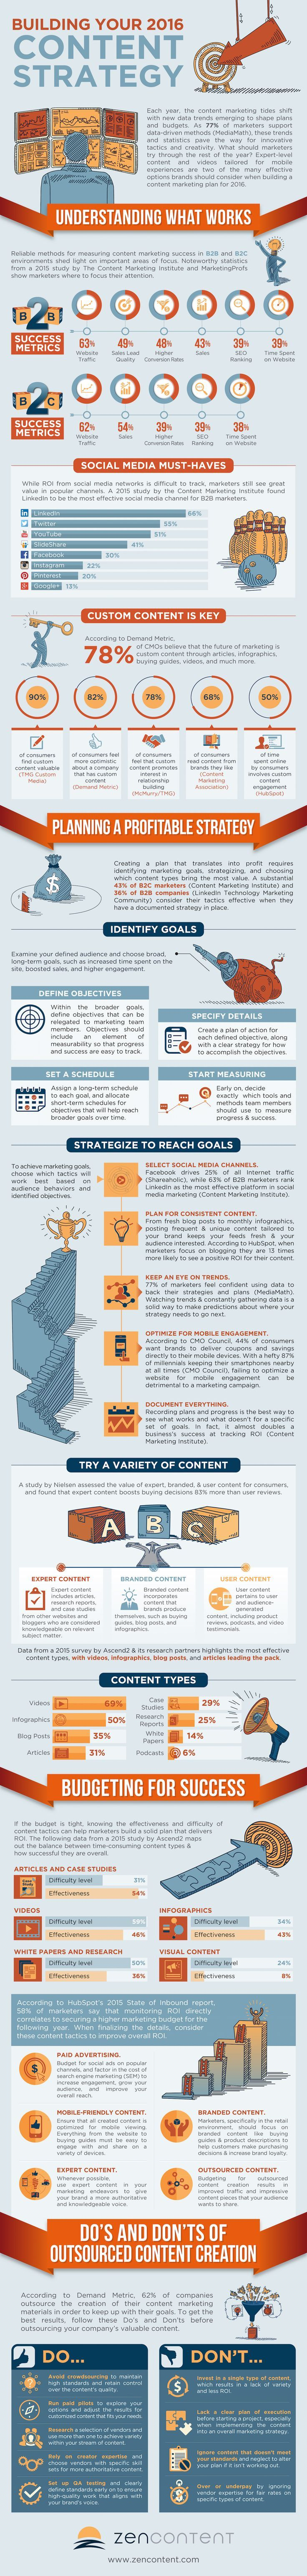 Building Your 2016 Content Strategy [Infographic] - Content Marketing   Social Media   Digital Marketing